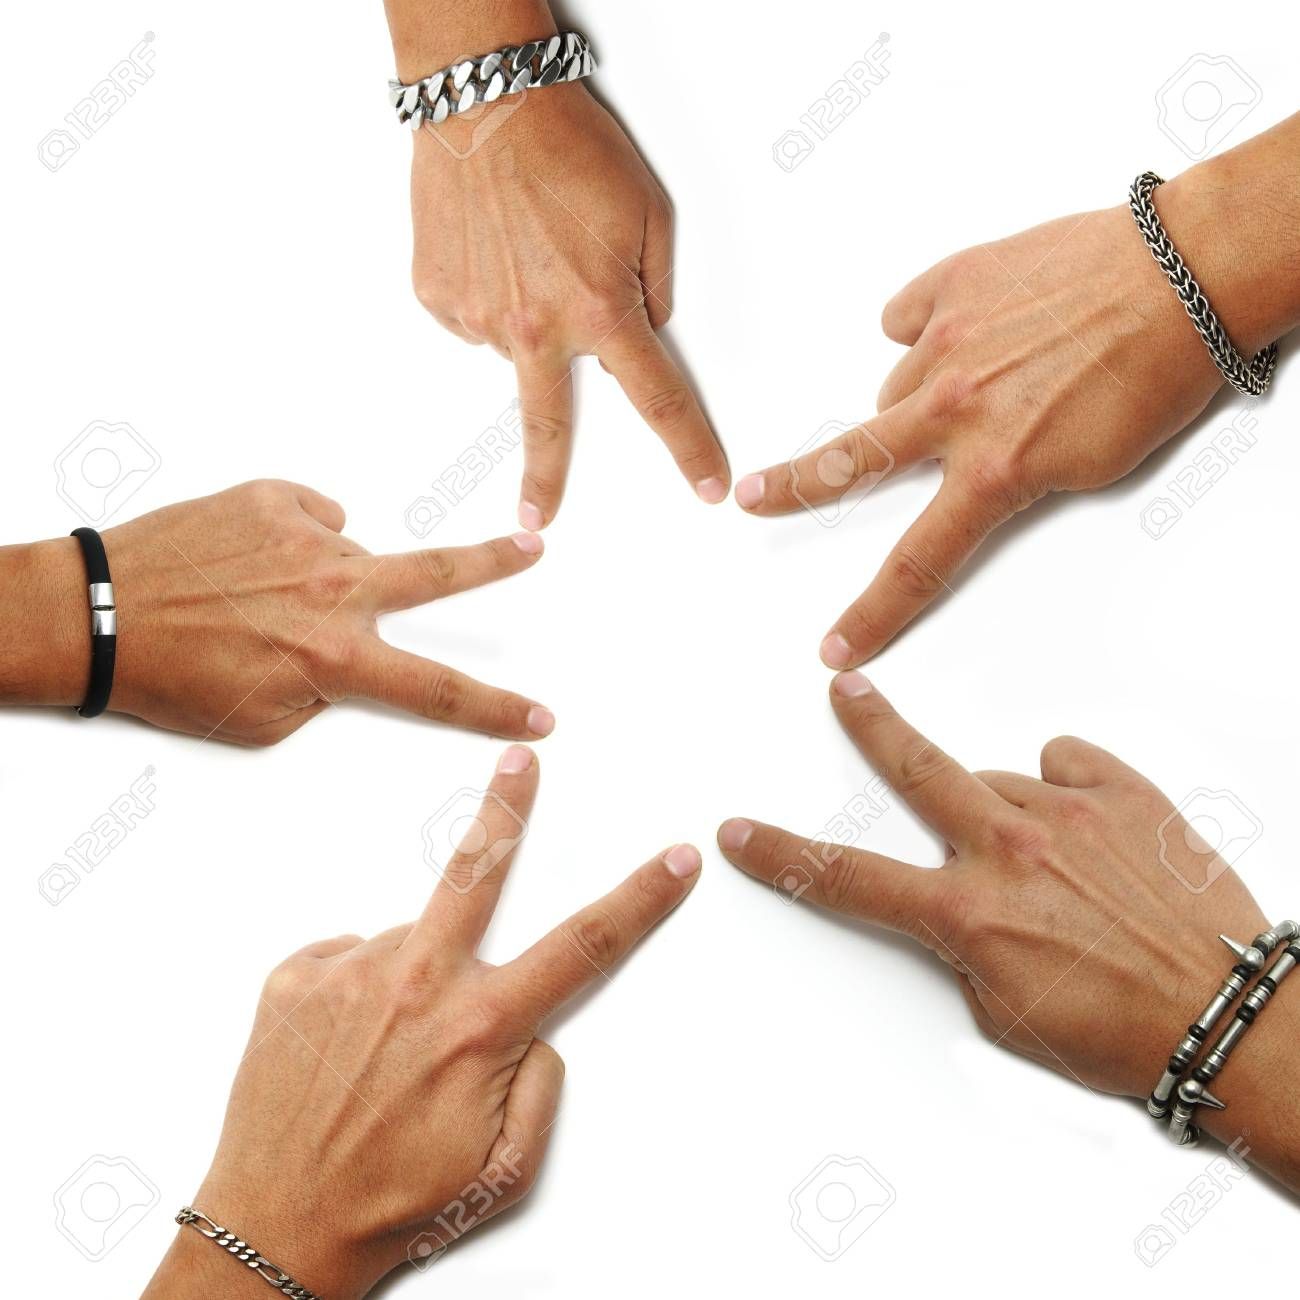 hands drawing a star on a white background Stock Photo - 6108247